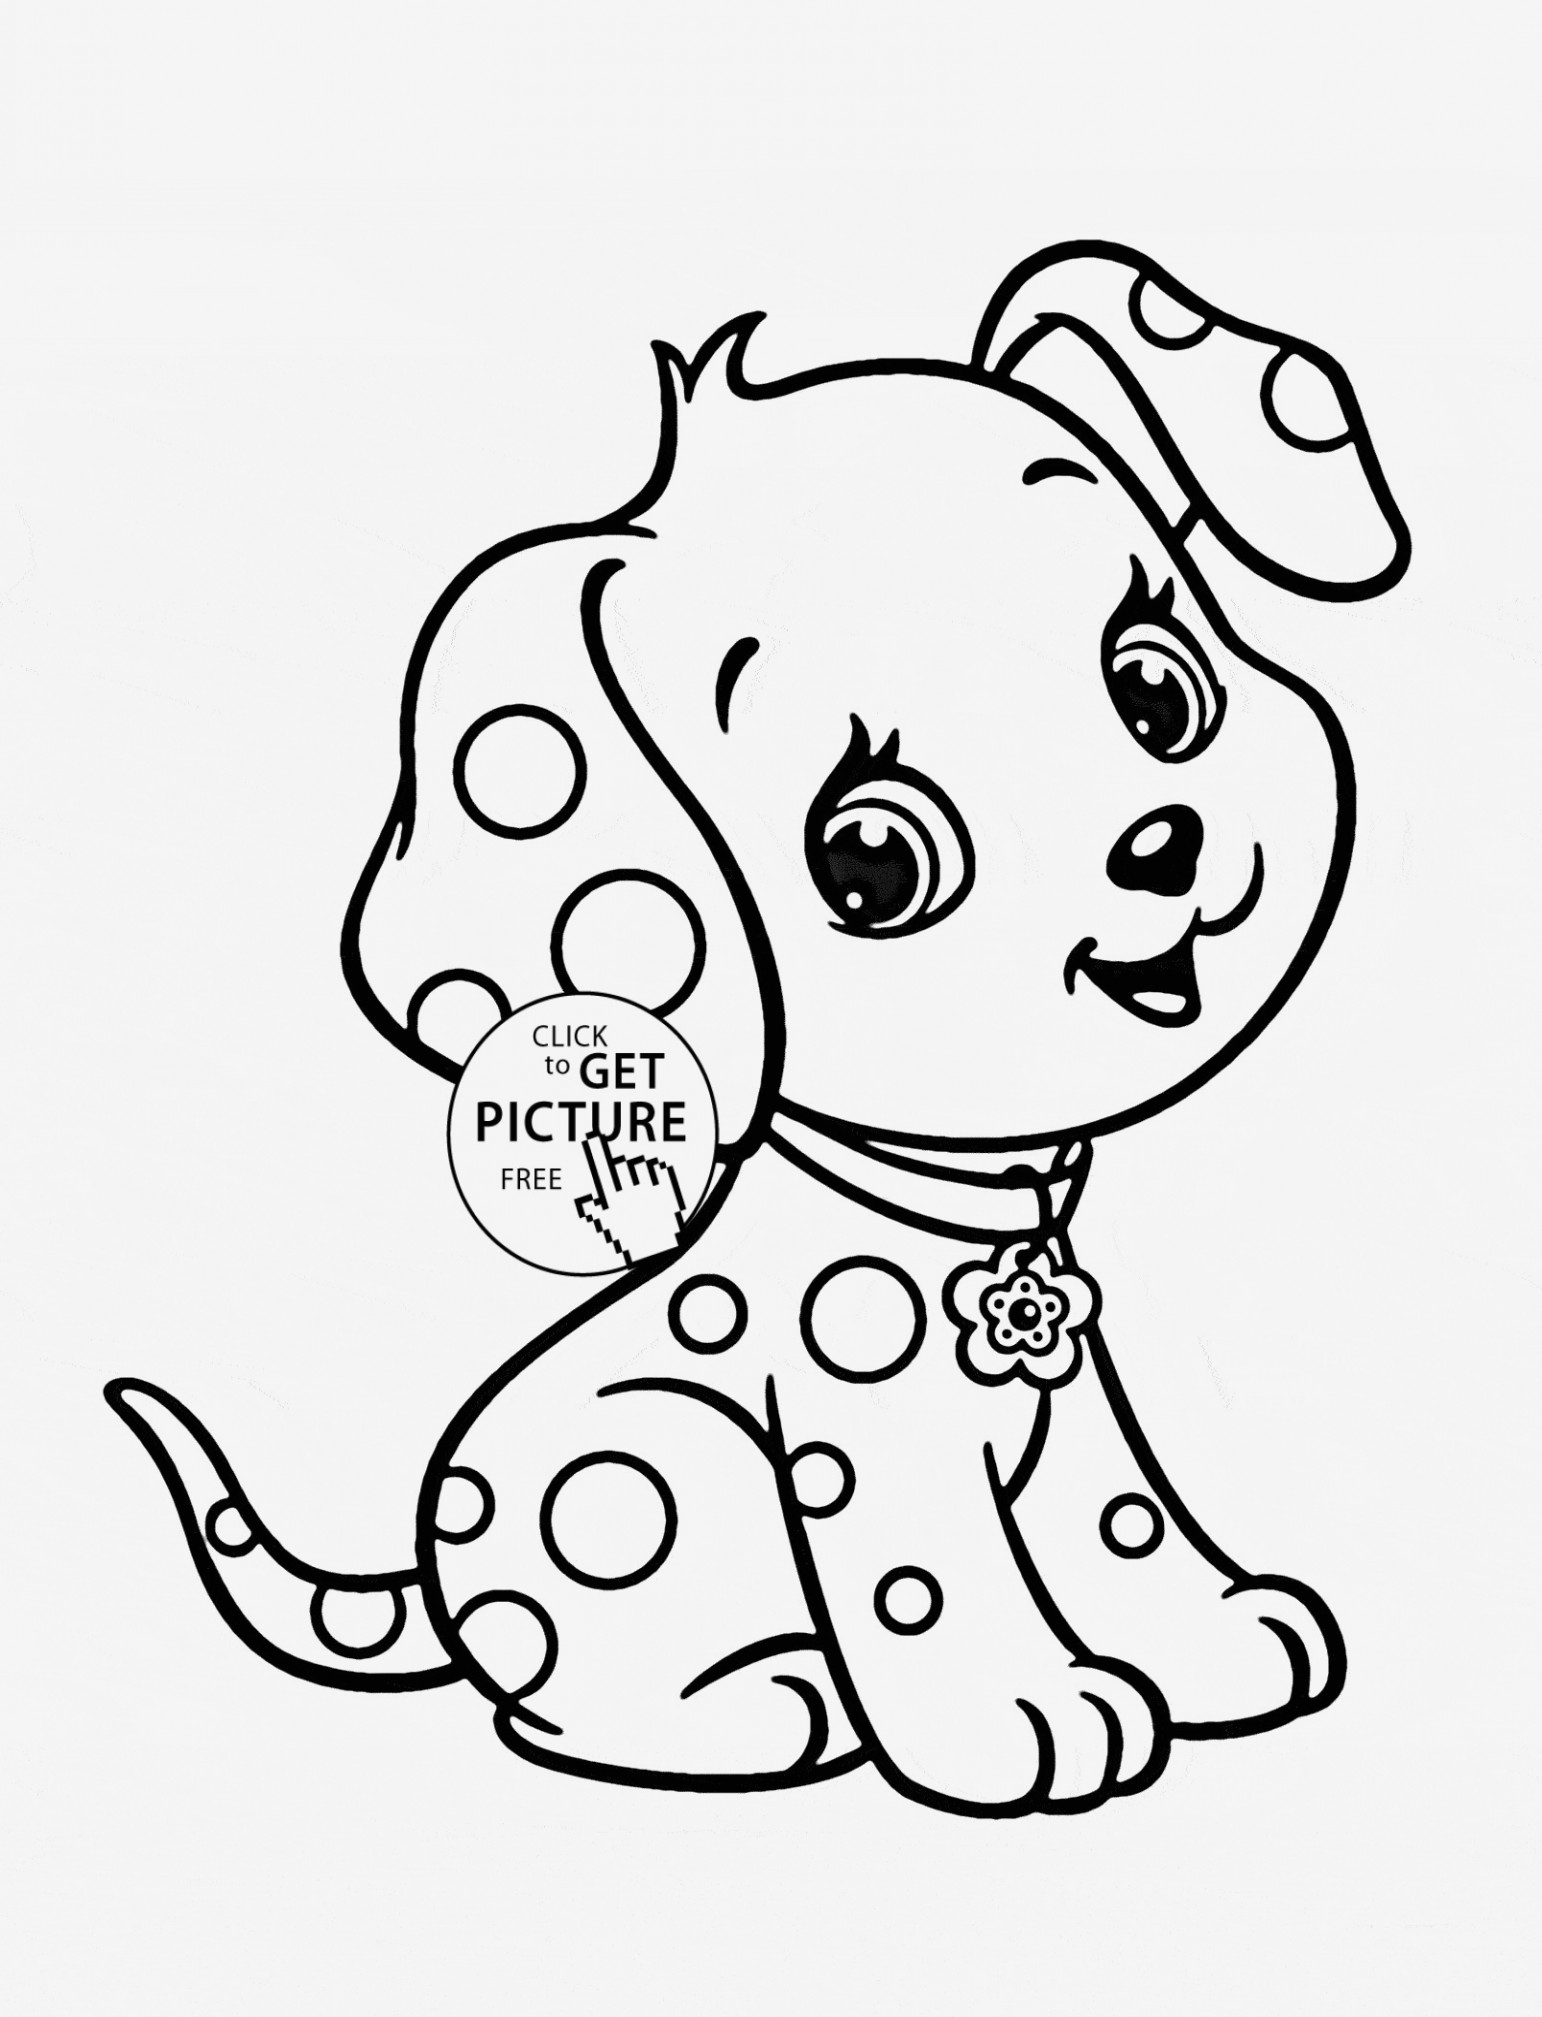 Coloring Pages On Pinterest Coloring Pages Barbie Coloring Book Pages Image Ideas Sheets